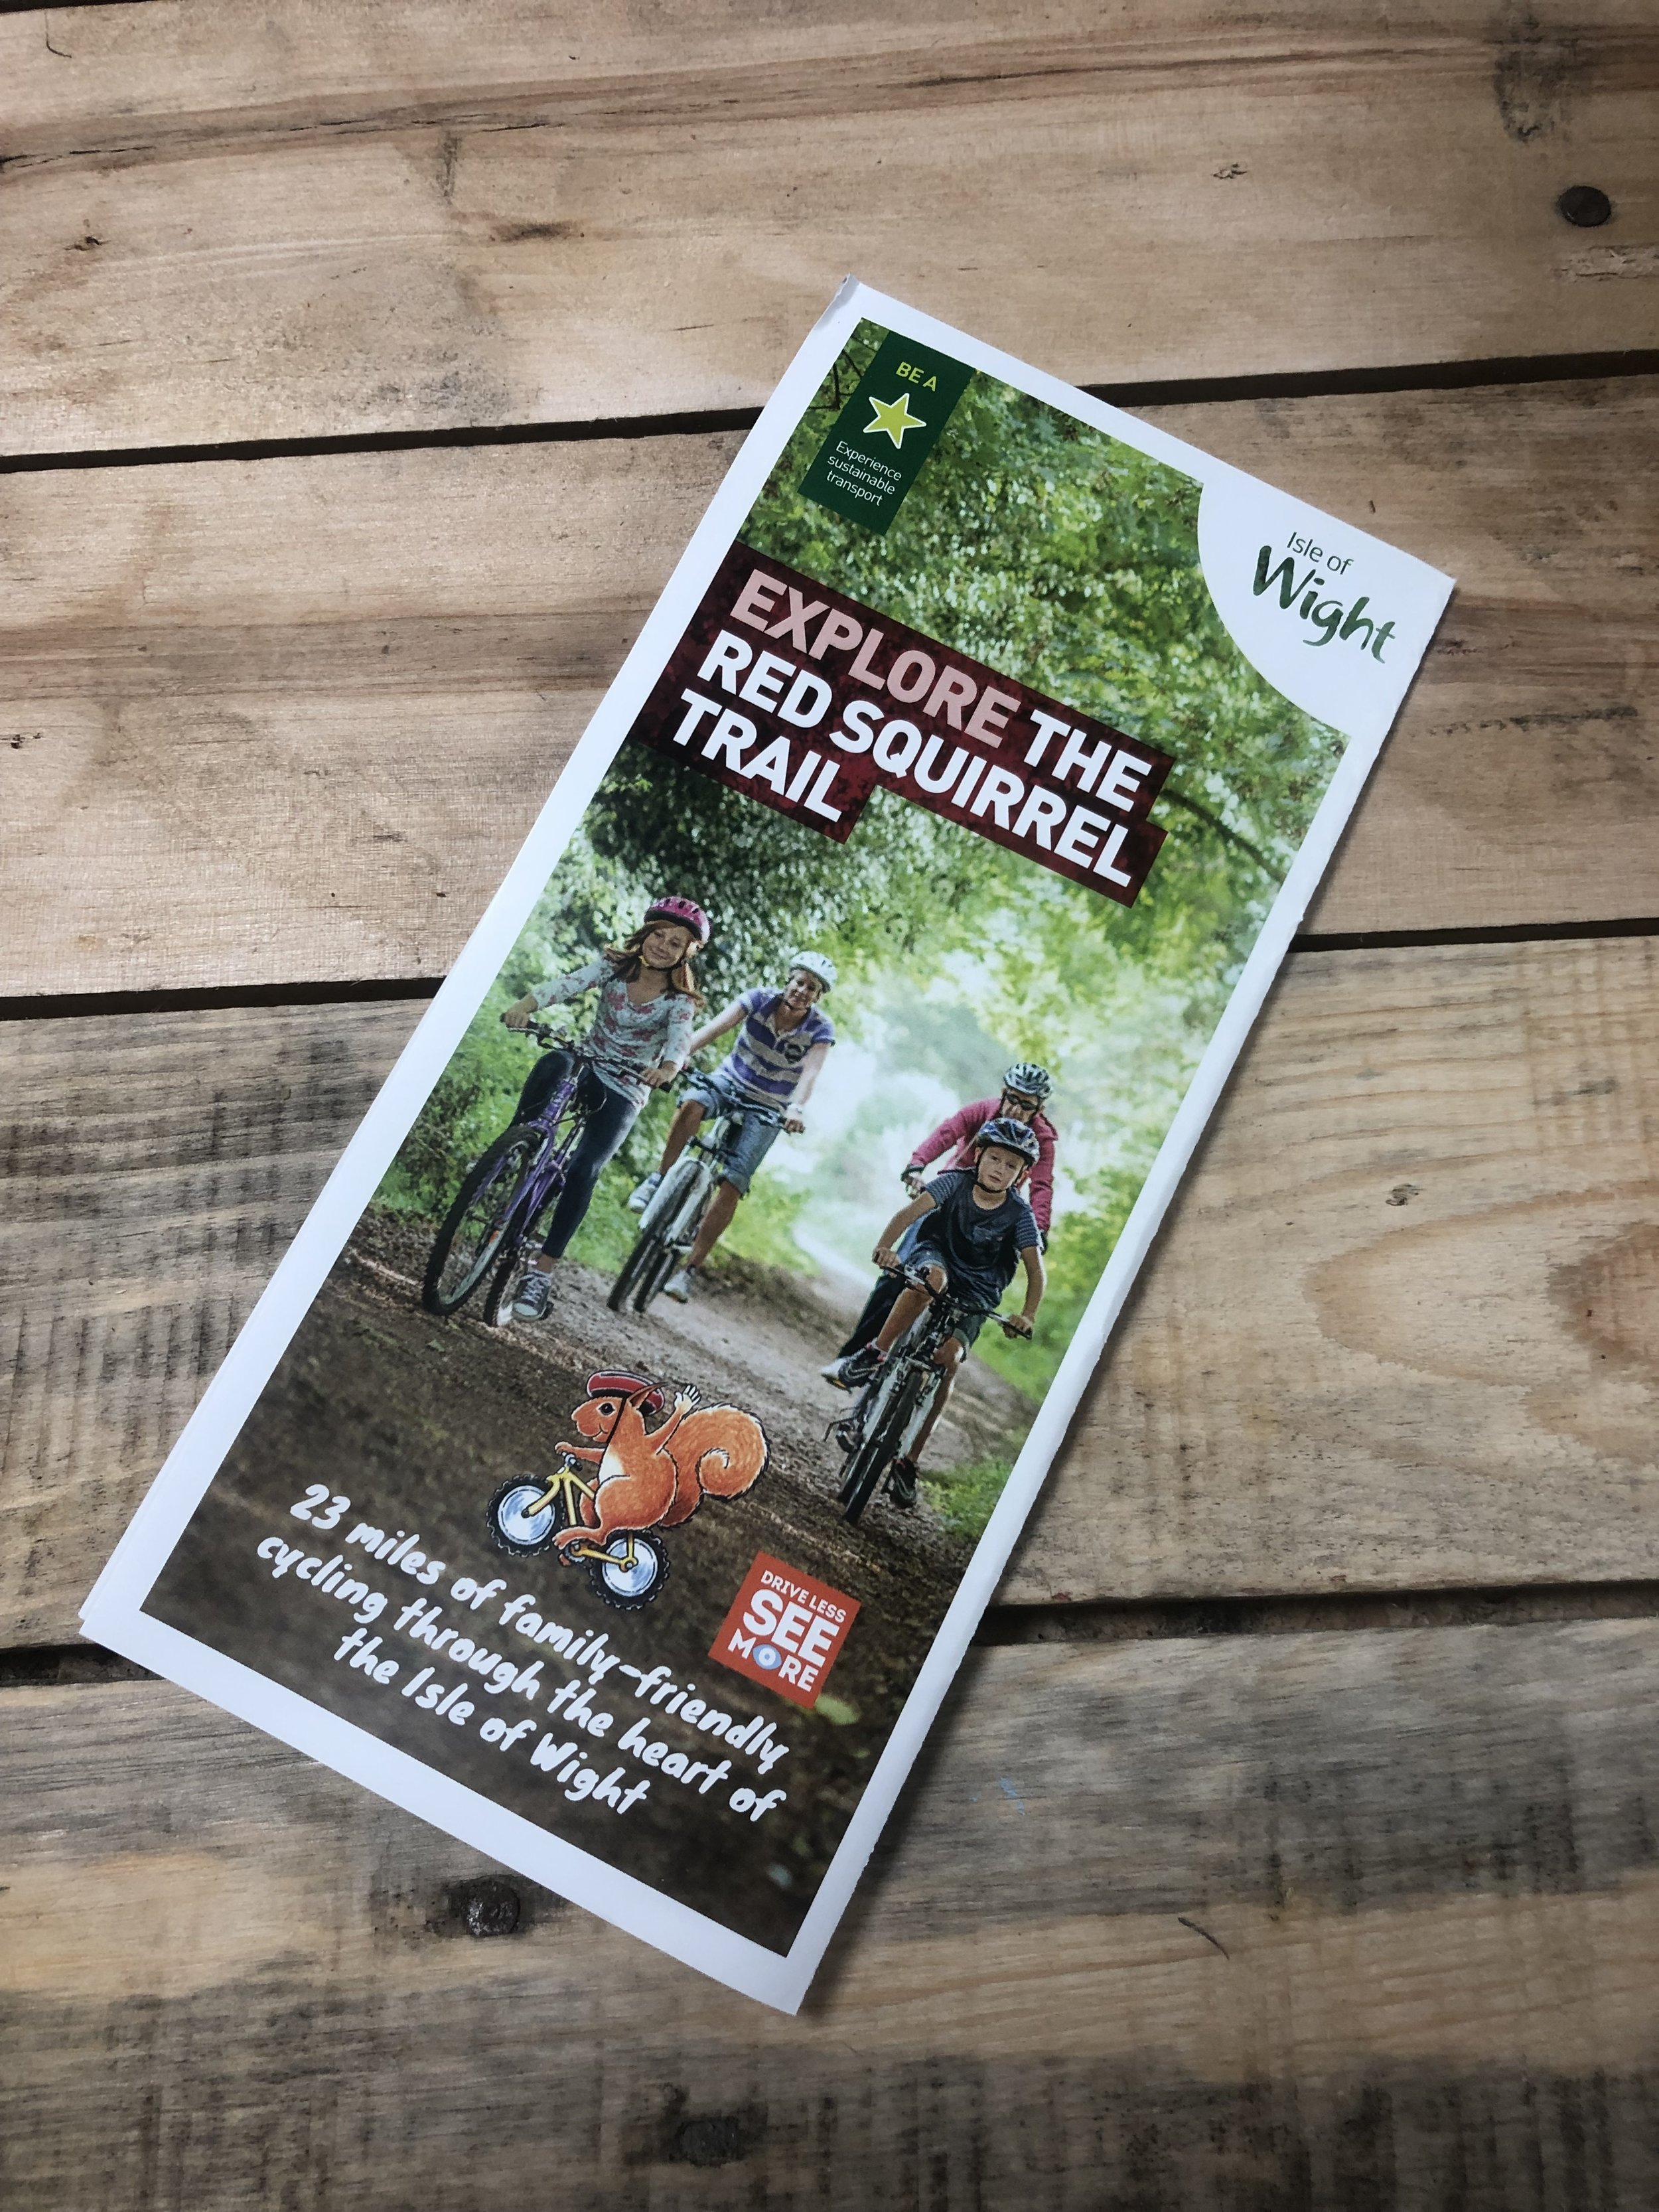 Red Squirrel Trail Route Map. - Available with your bike hire, just ask when you collect your bikes